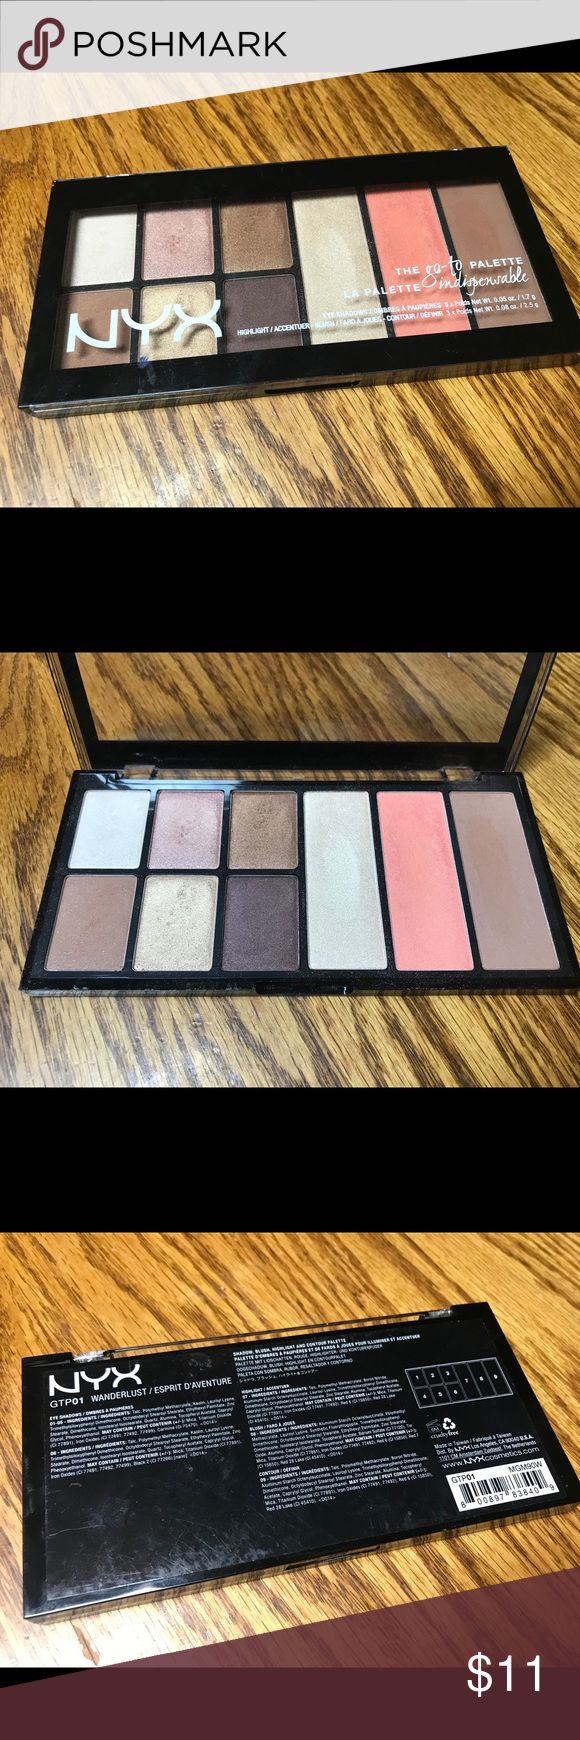 Nyx the go-to palette Nyx the go-to palette in the shade wanderlust. Used 1x. Retails $16.99 on the ulta website. Will take lower via 🅿️🅿️. NYX Cosmetics Makeup Eyeshadow